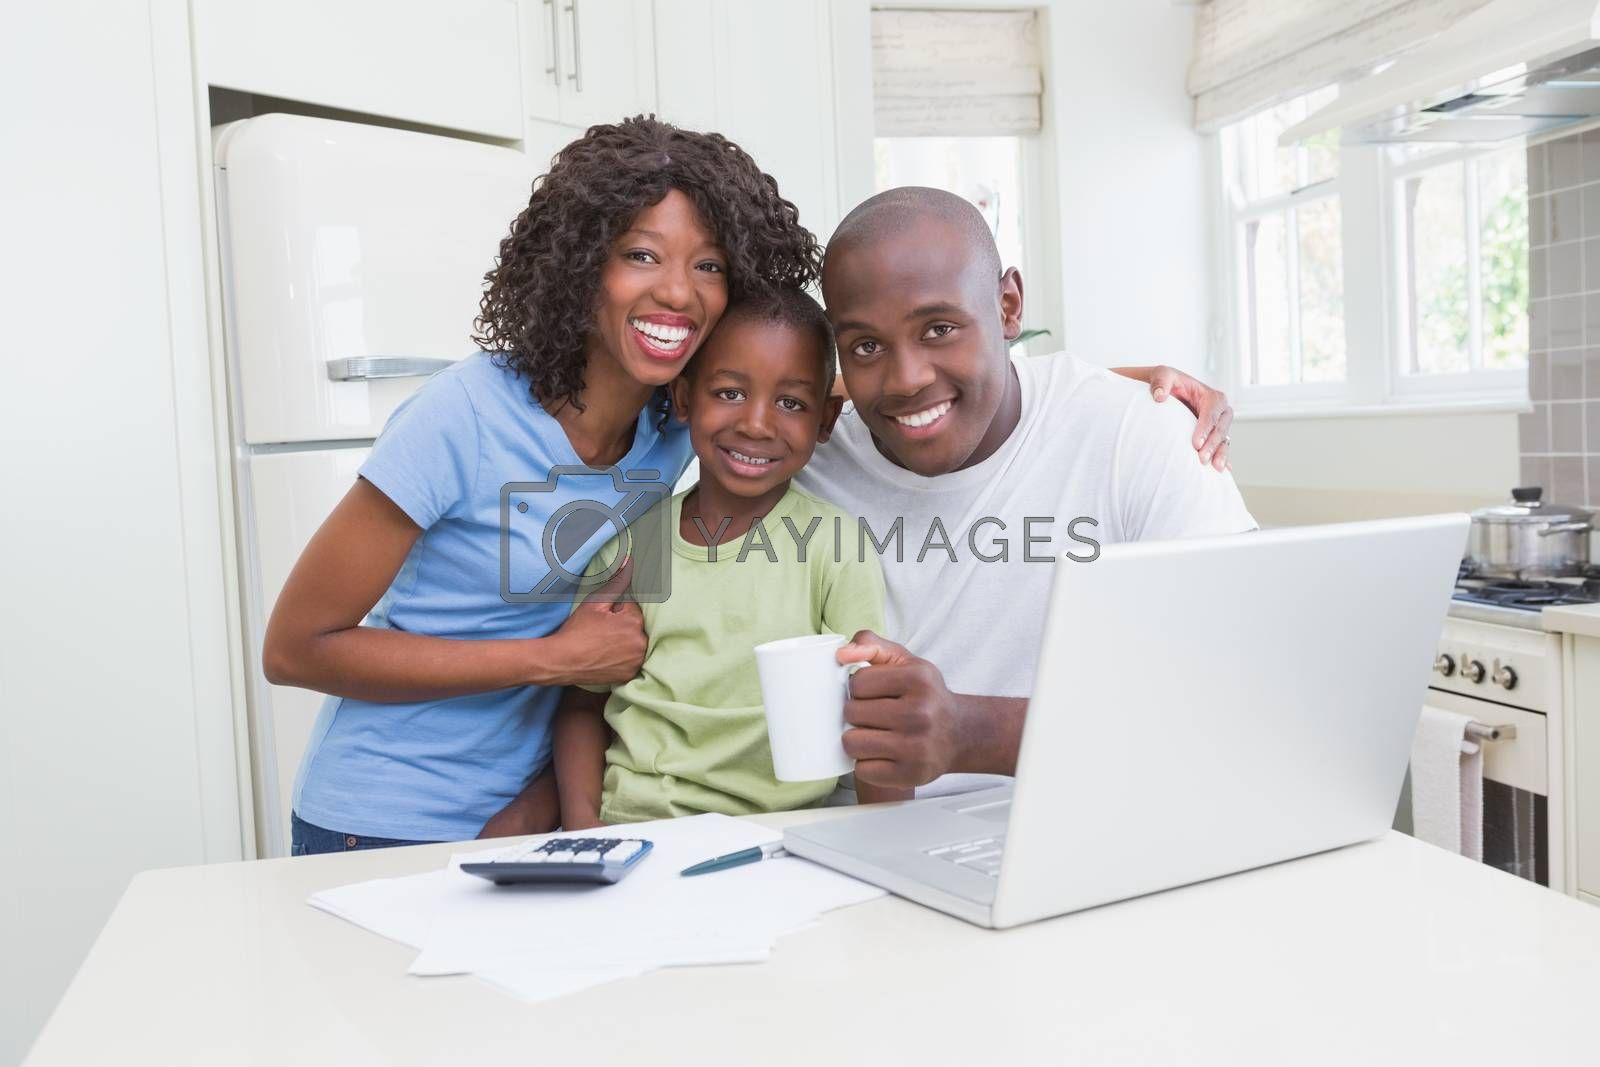 Royalty free image of Portrait of a happy smiling family using computer  by Wavebreakmedia